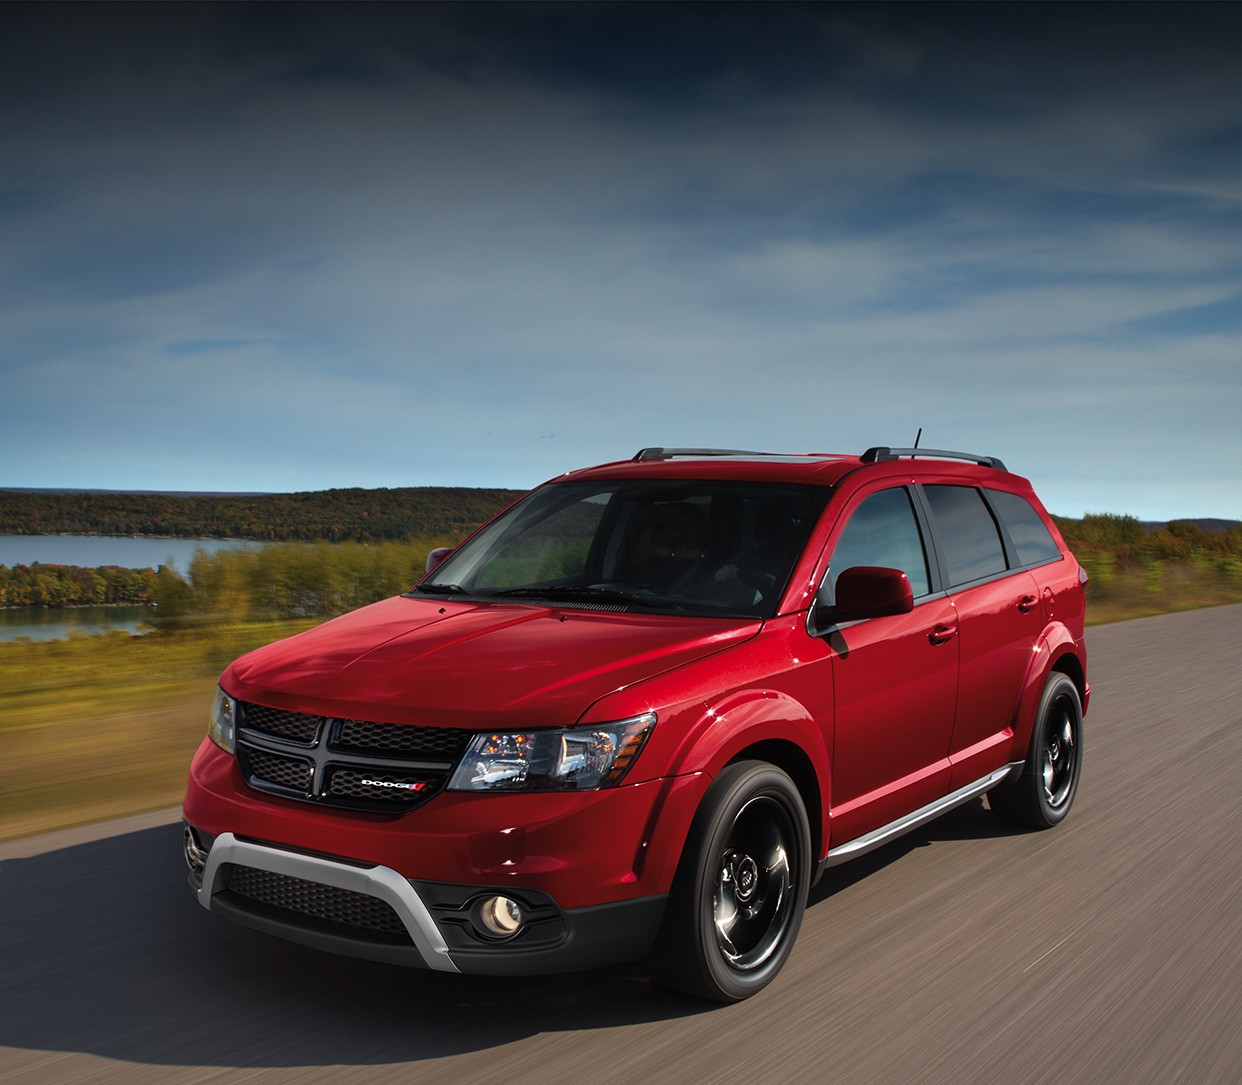 2020 Dodge Journey Images